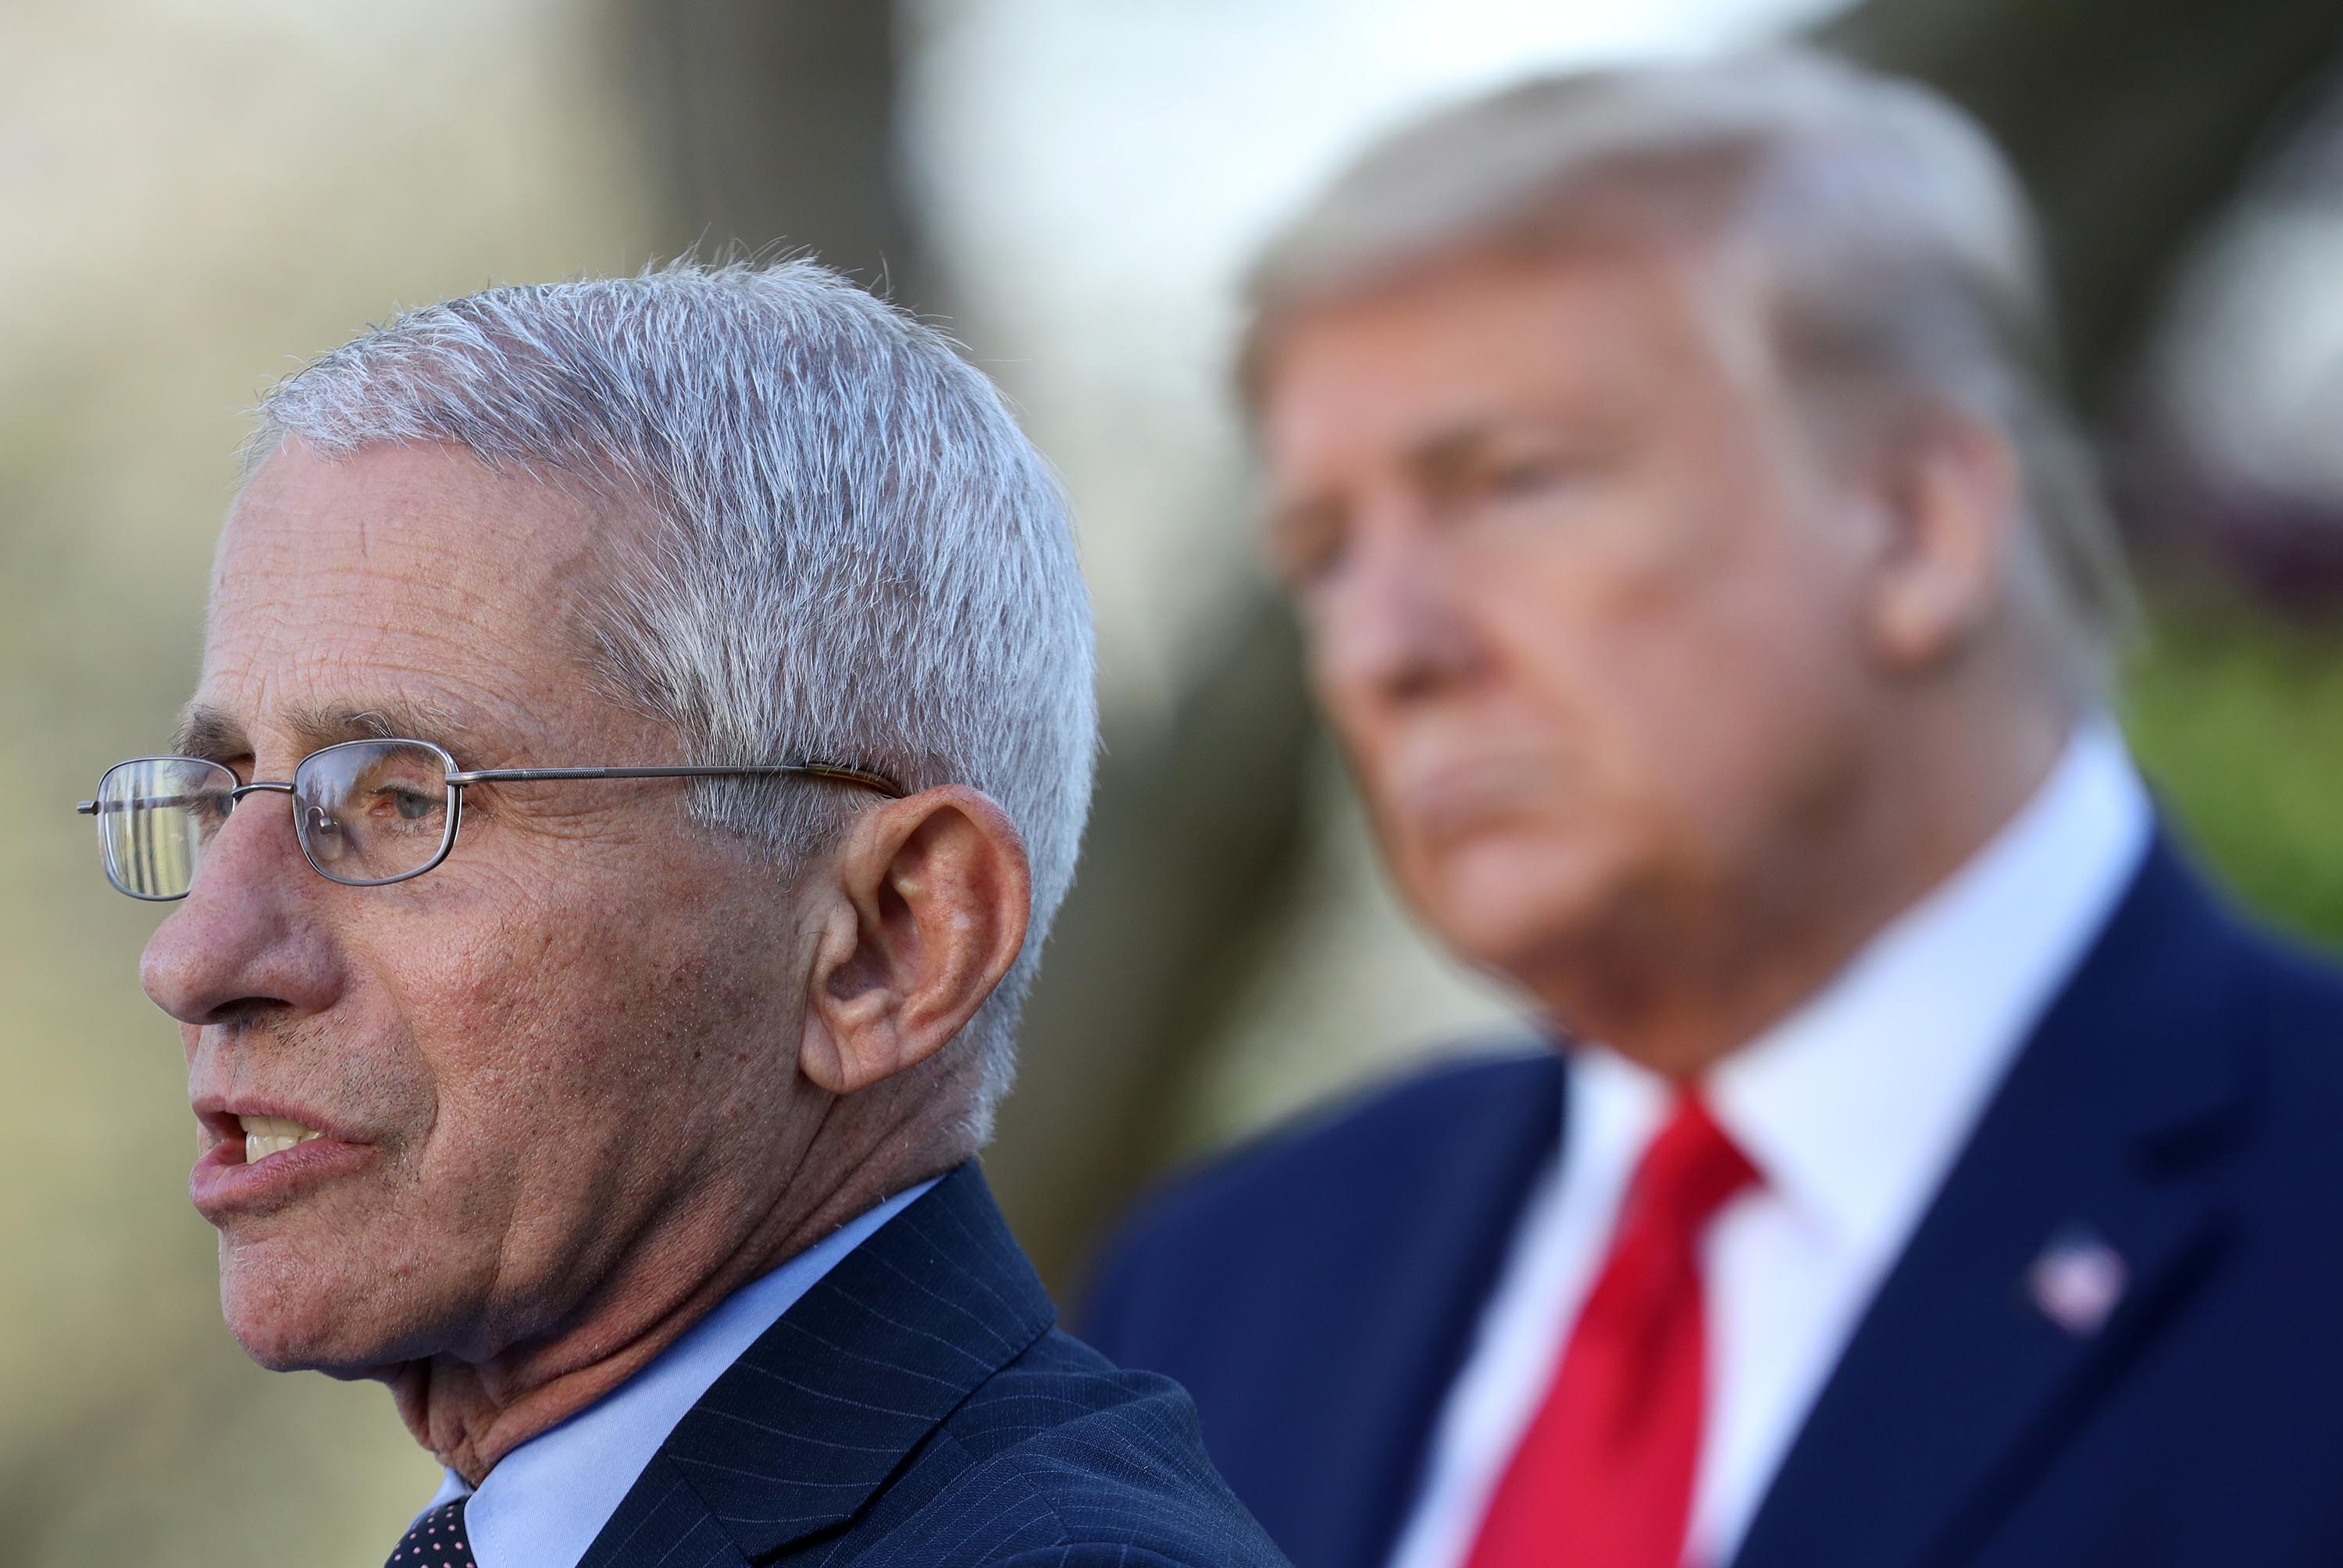 Fauci spat illustrates what some fear is a directionless White House